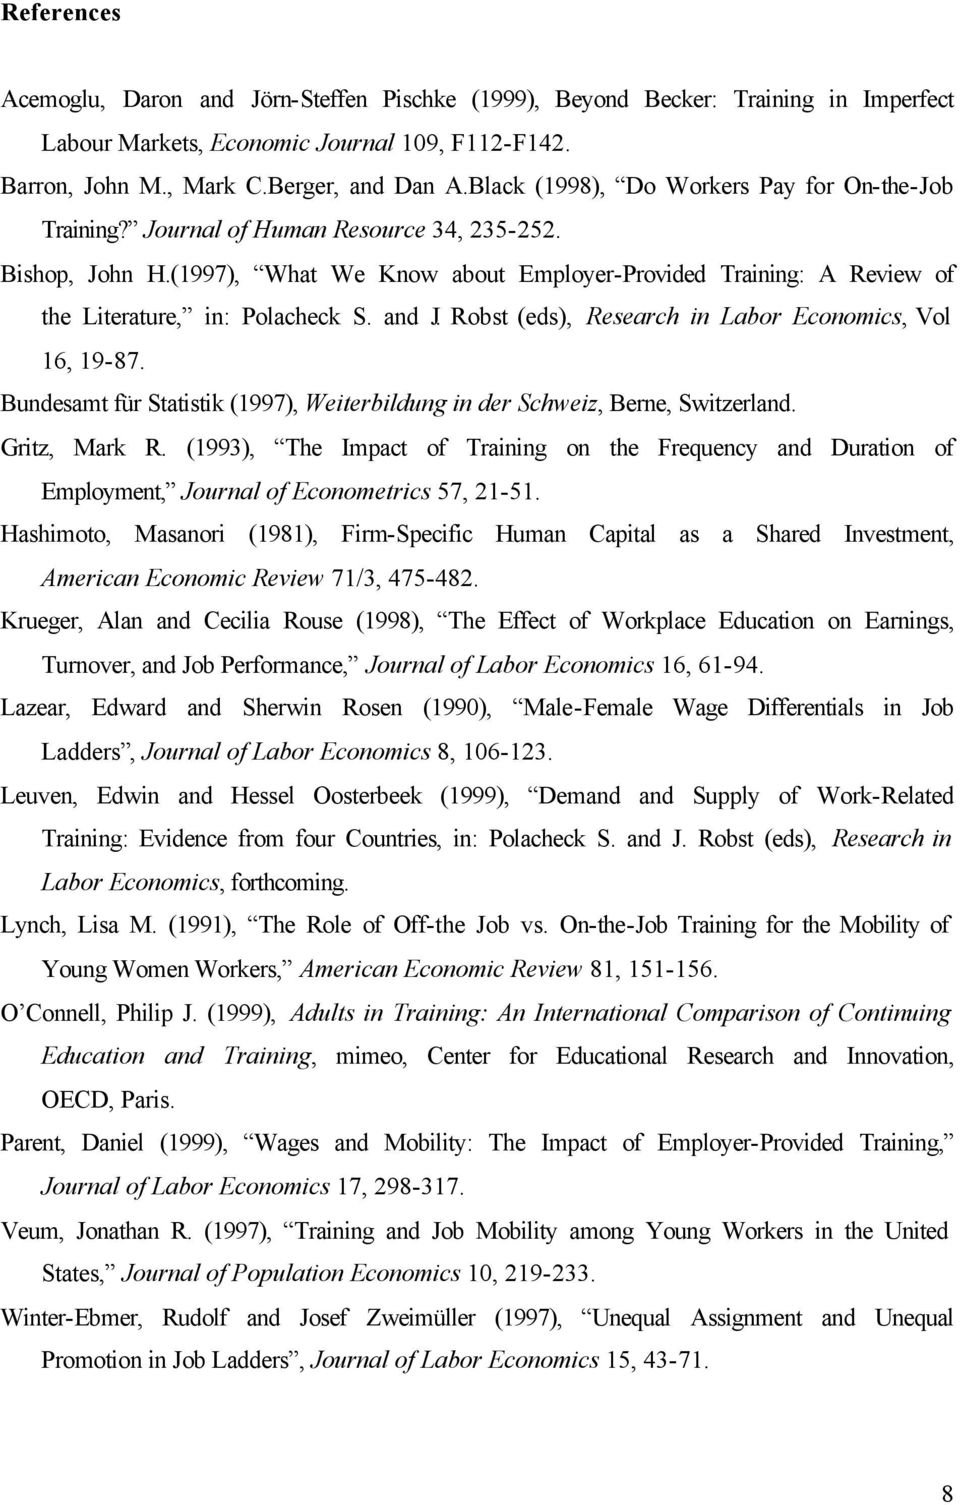 (1997), What We Know about Employer-Provided Training: A Review of the Literature, in: Polacheck S. and J. Robst (eds), Research in Labor Economics, Vol 16, 19-87.